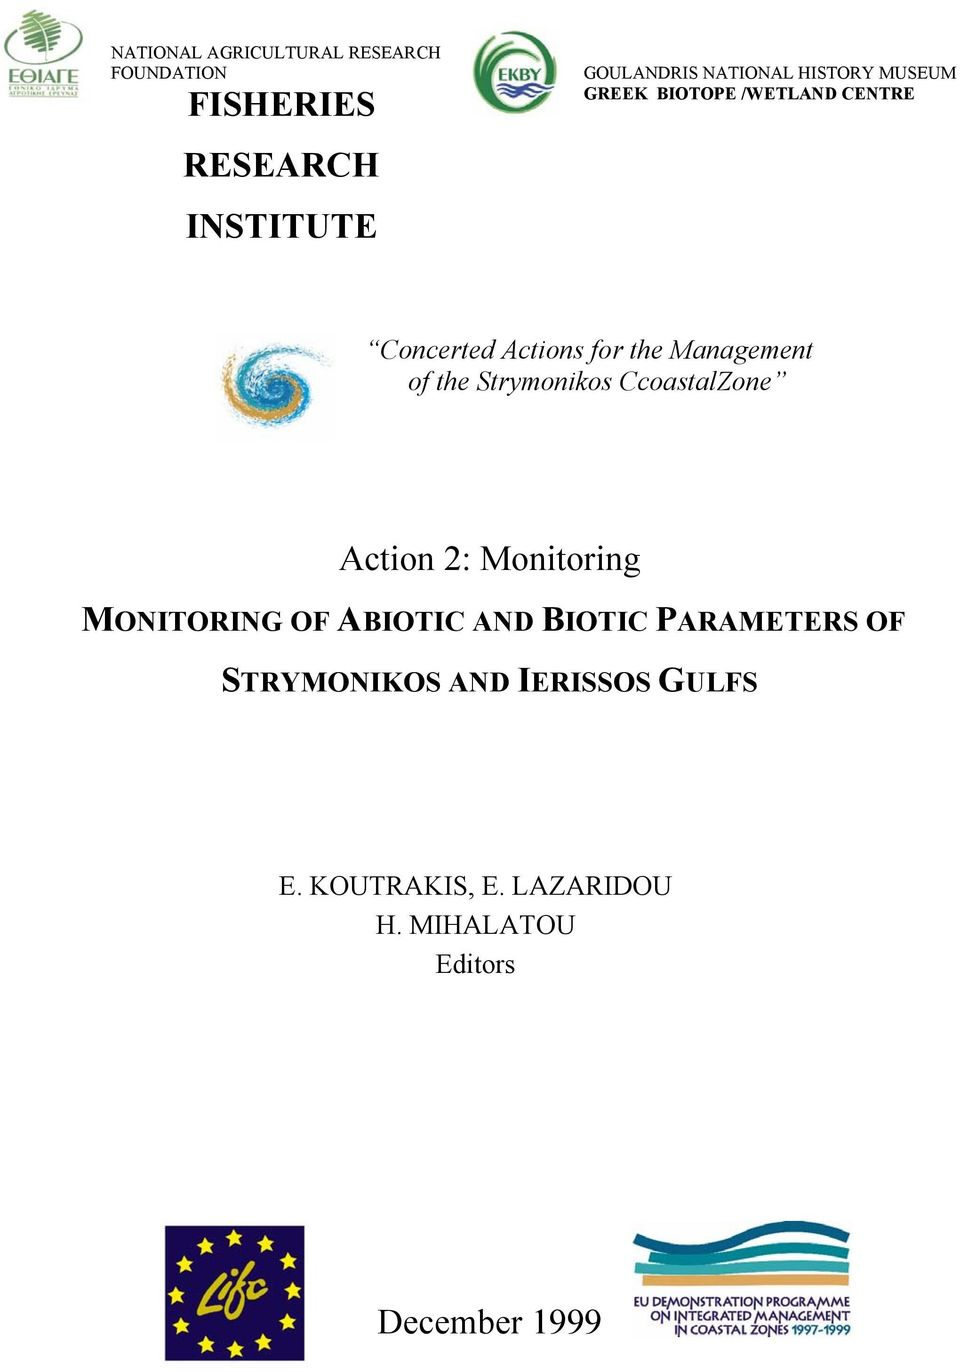 CcoastalZone Action 2: Monitoring MONITORING OF ABIOTIC AND BIOTIC PARAMETERS OF STRYMONIKOS AND